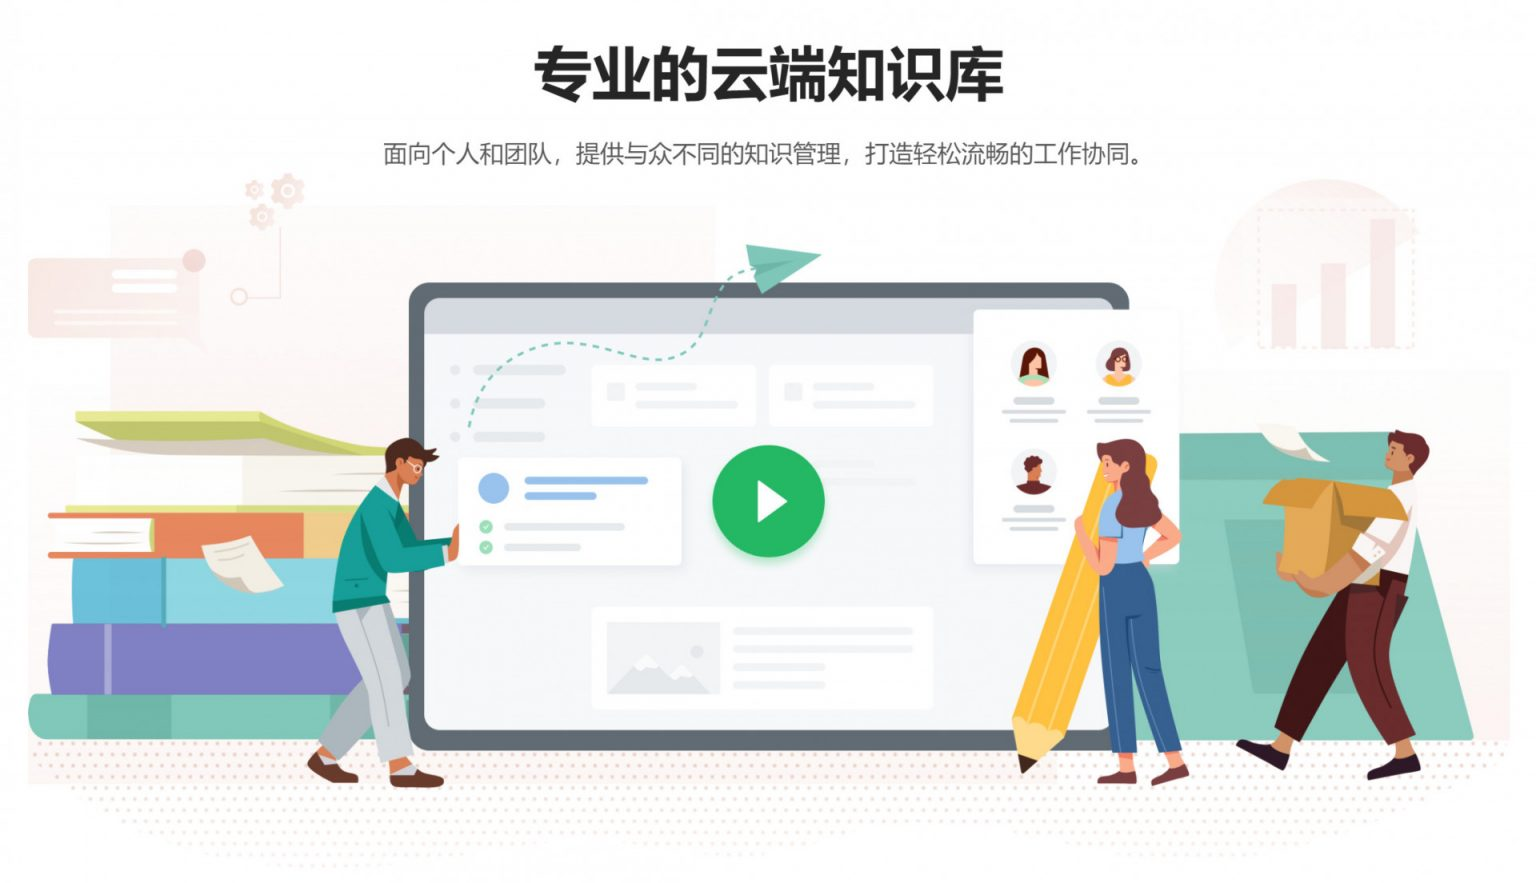 technode.com-ant-financial-announces-new-enterprise-collaboration-software-yuque-technode.com-ant-financial-announces-new-enterprise-collaboration-software-yuque-wechat-20191209113212-1536x883